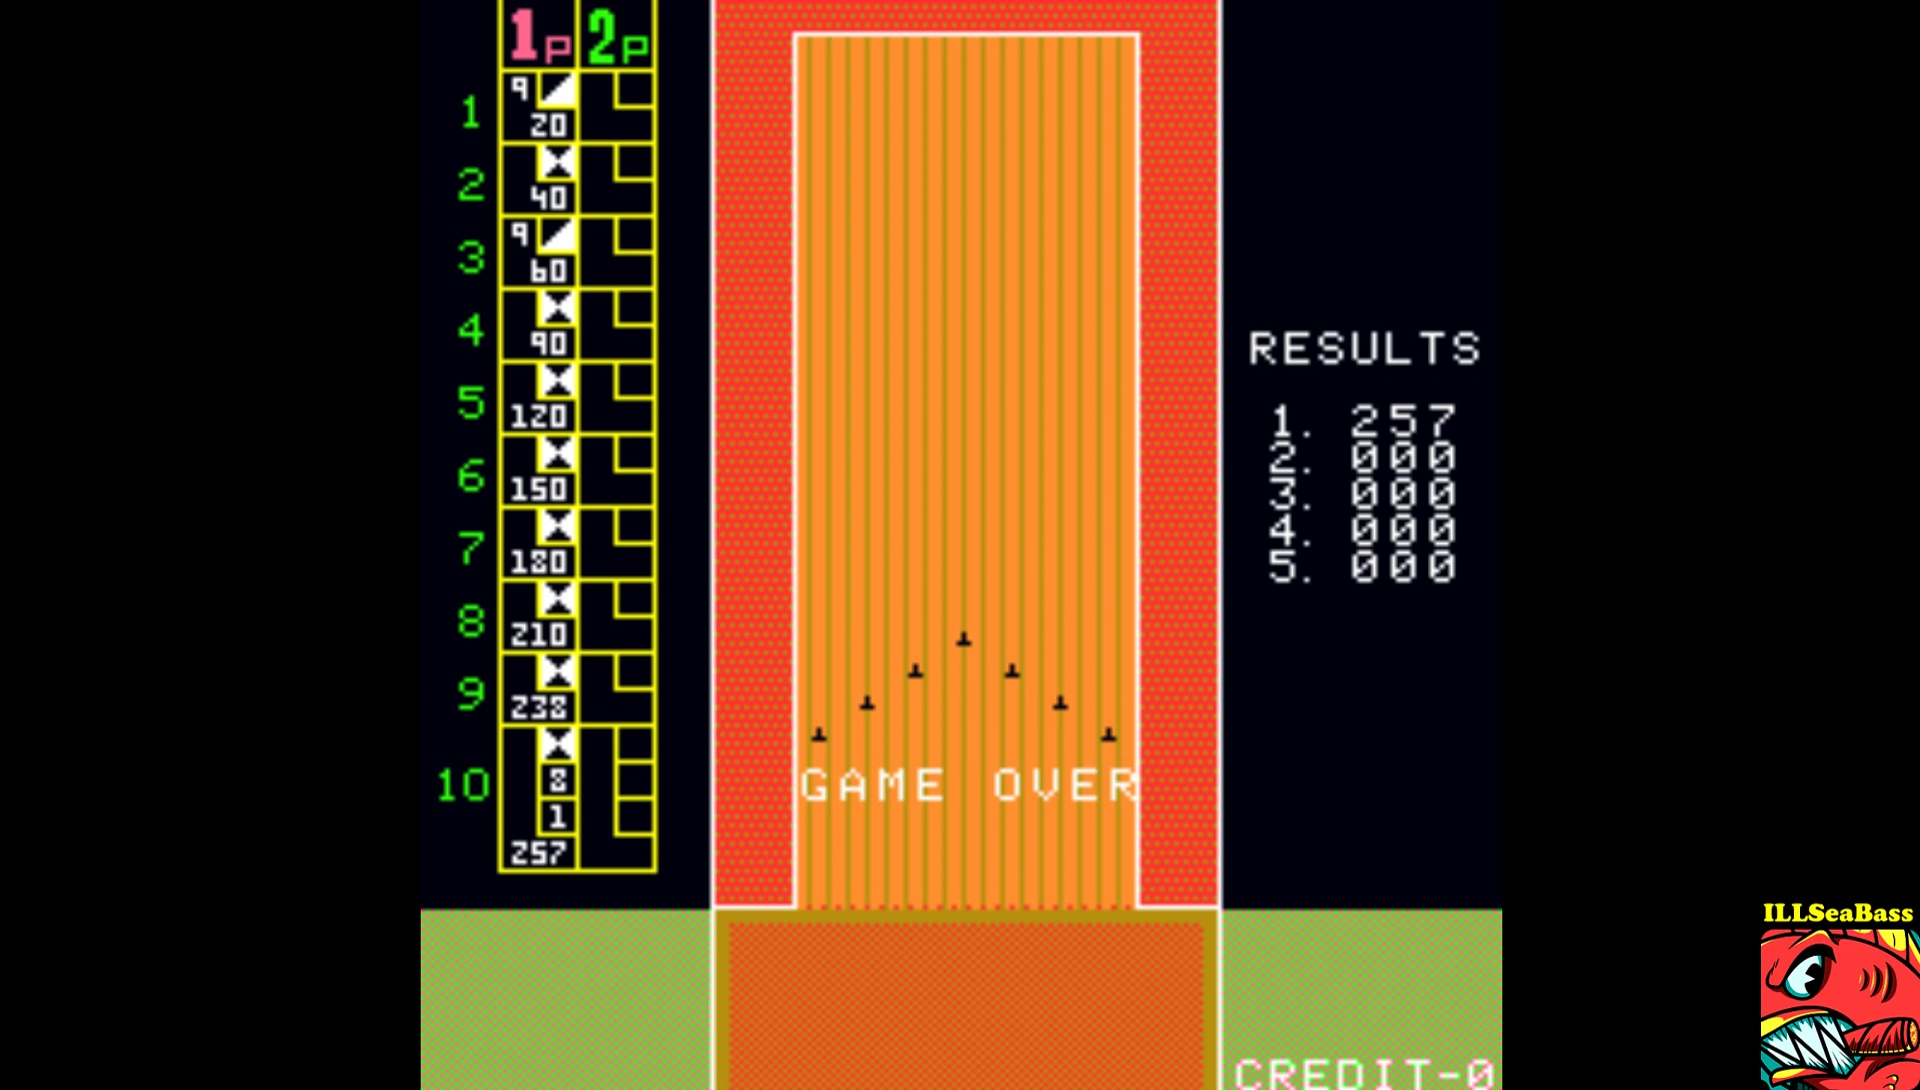 ILLSeaBass: Strike Bowling [sbowling] (Arcade Emulated / M.A.M.E.) 257 points on 2017-02-16 12:15:50